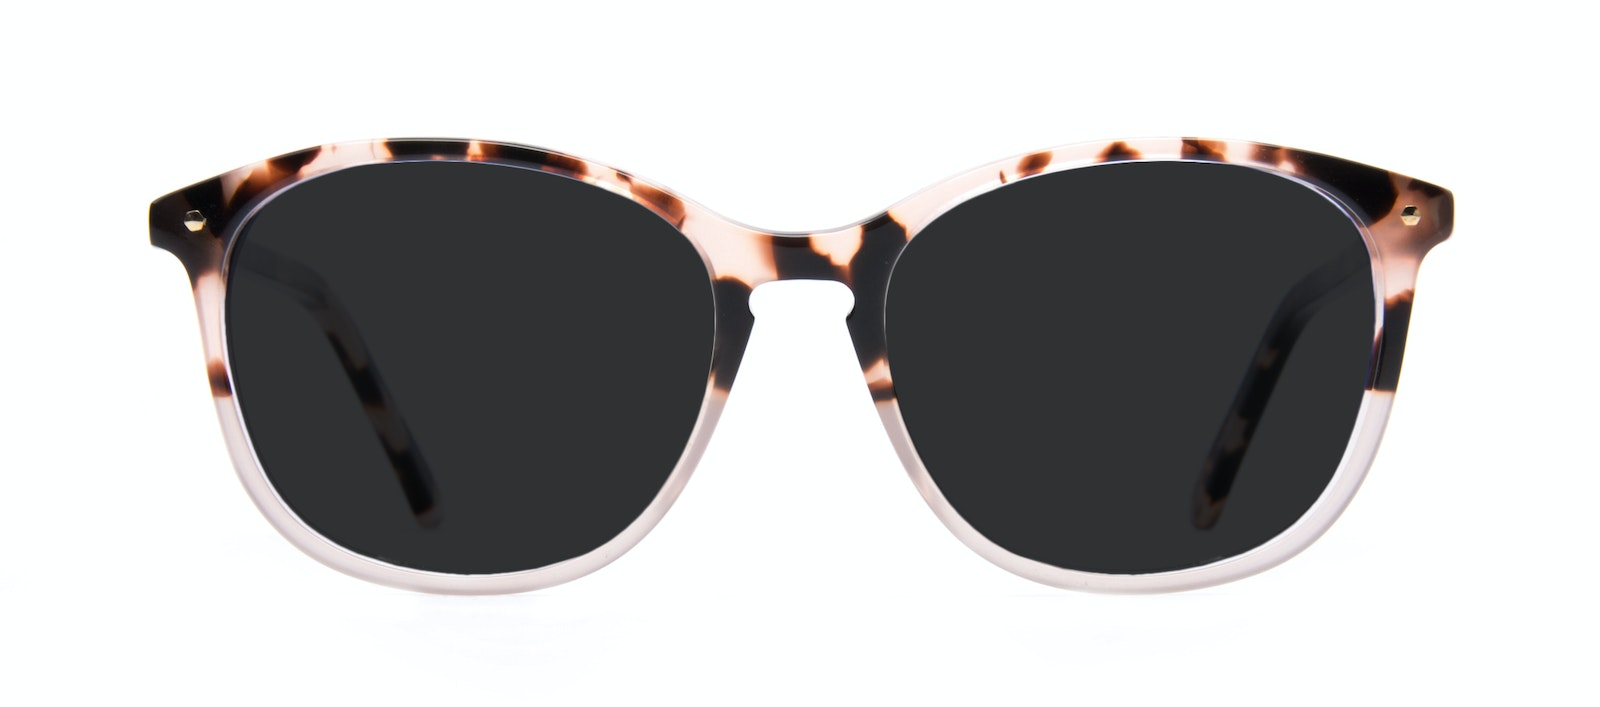 Affordable Fashion Glasses Rectangle Square Round Sunglasses Women Nadine Two Tone Pink Front